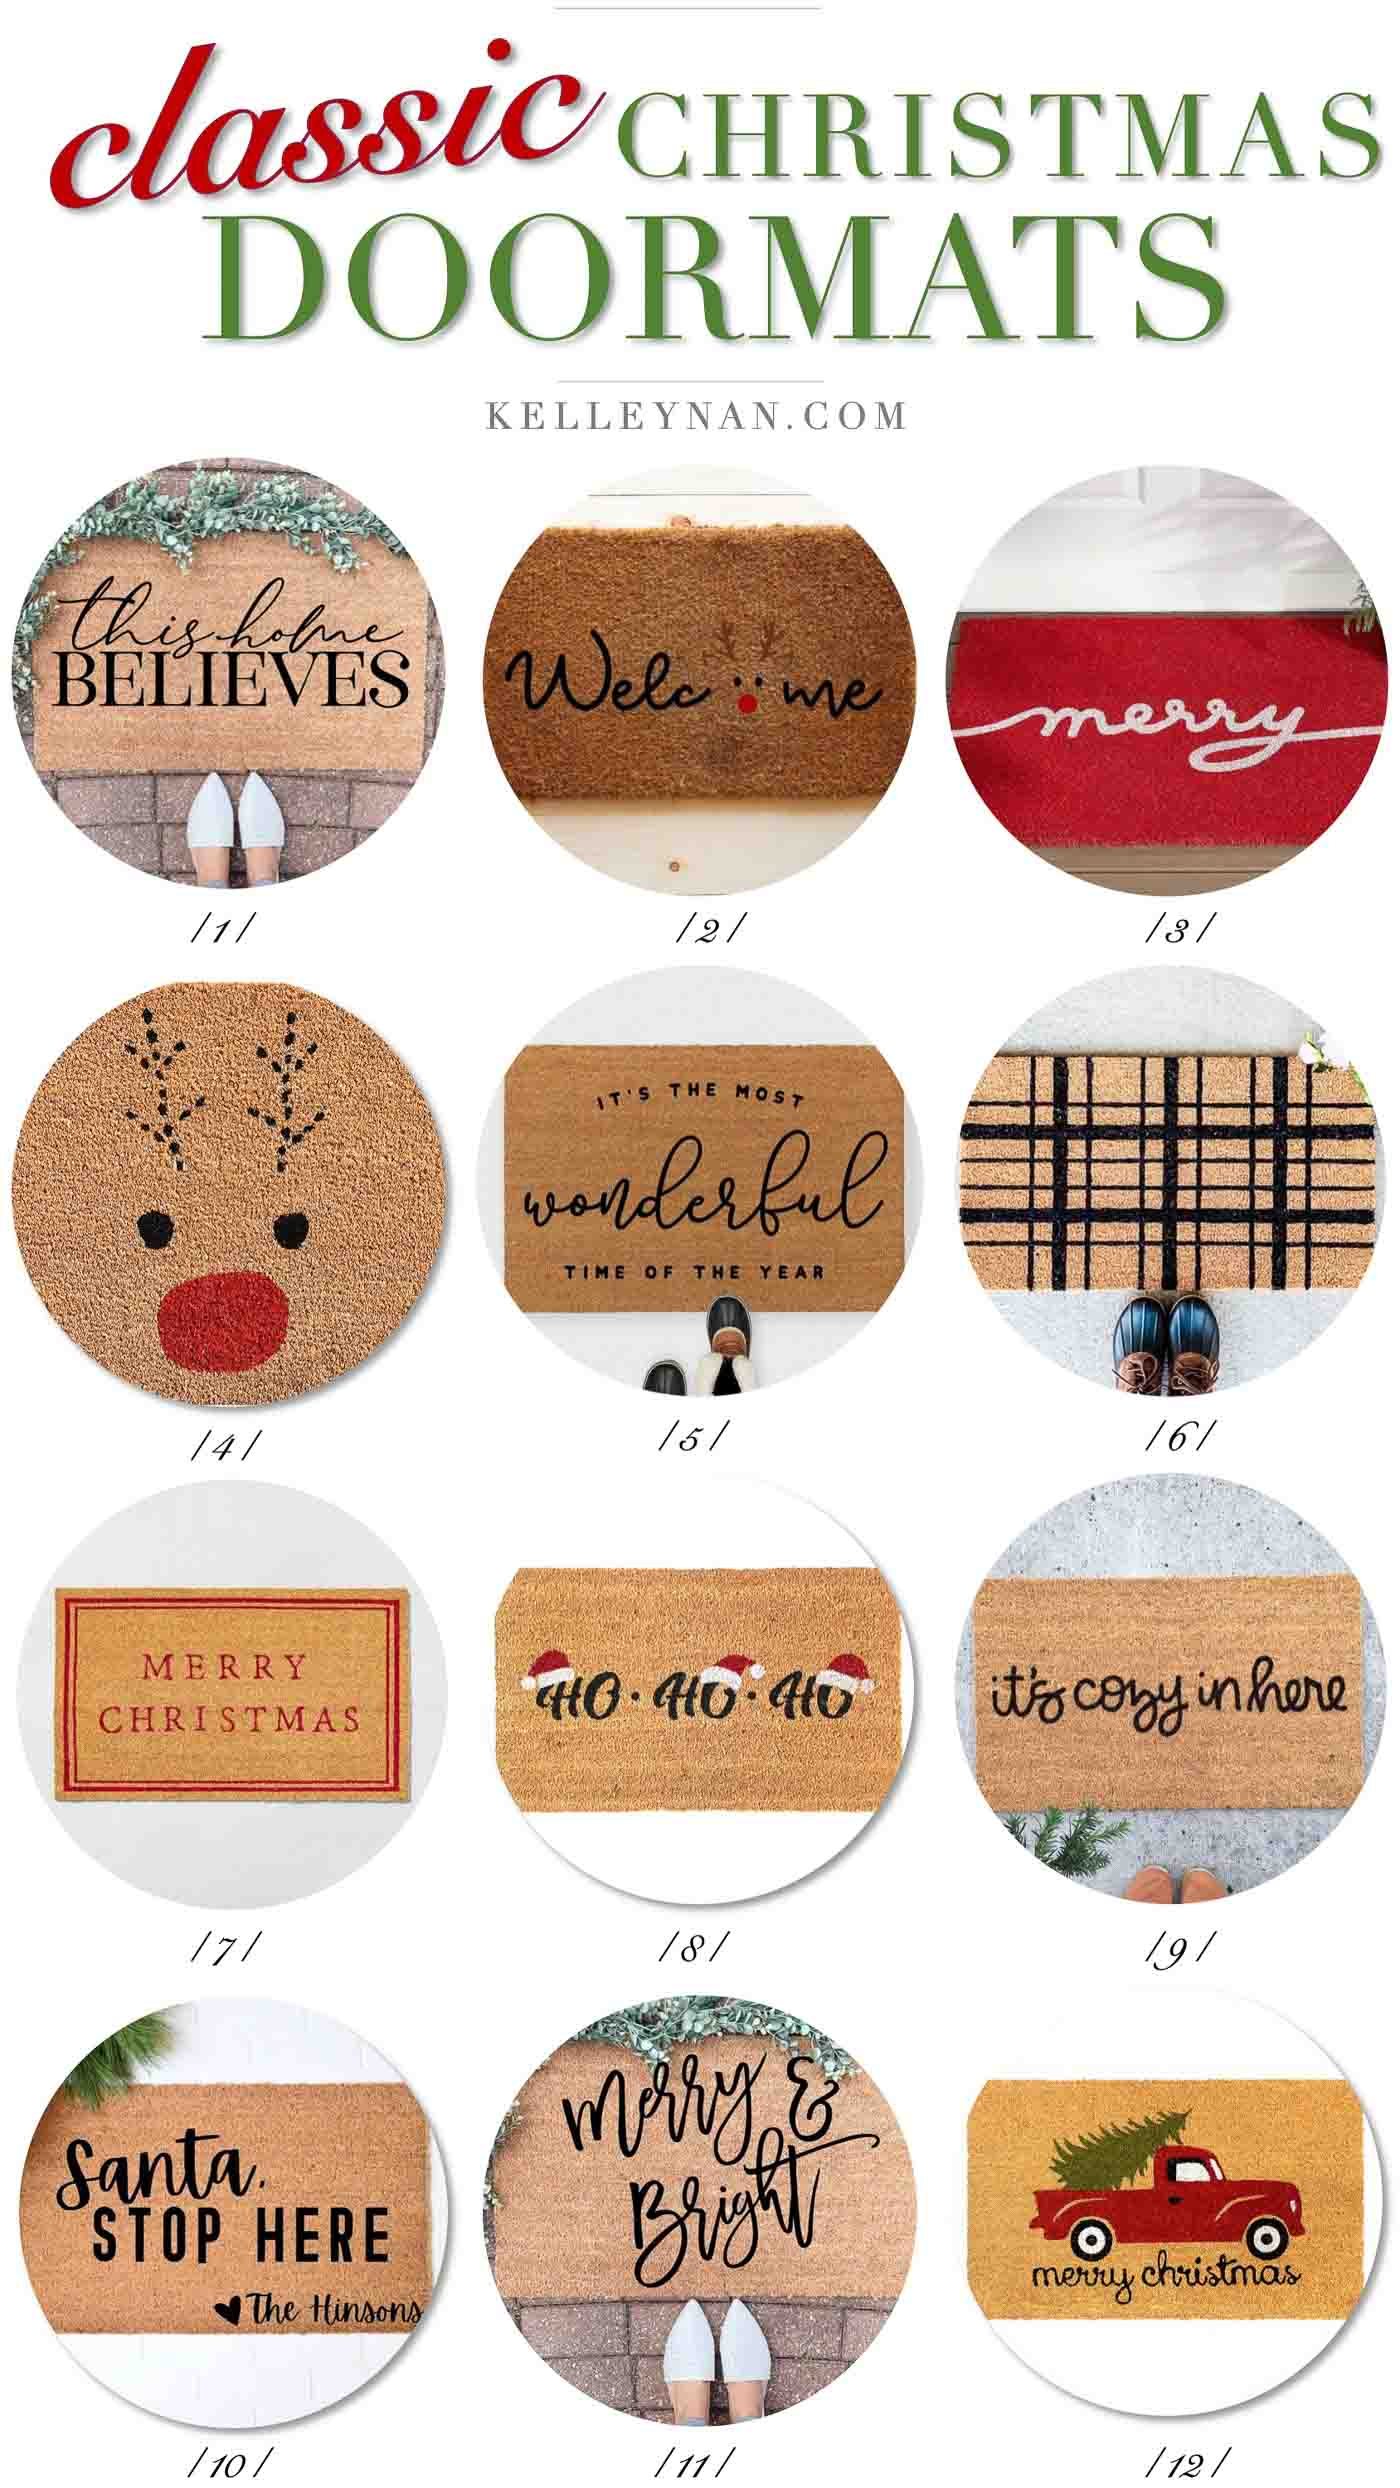 Christmas Doormats to Spruce Up Your Holiday Front Porch!